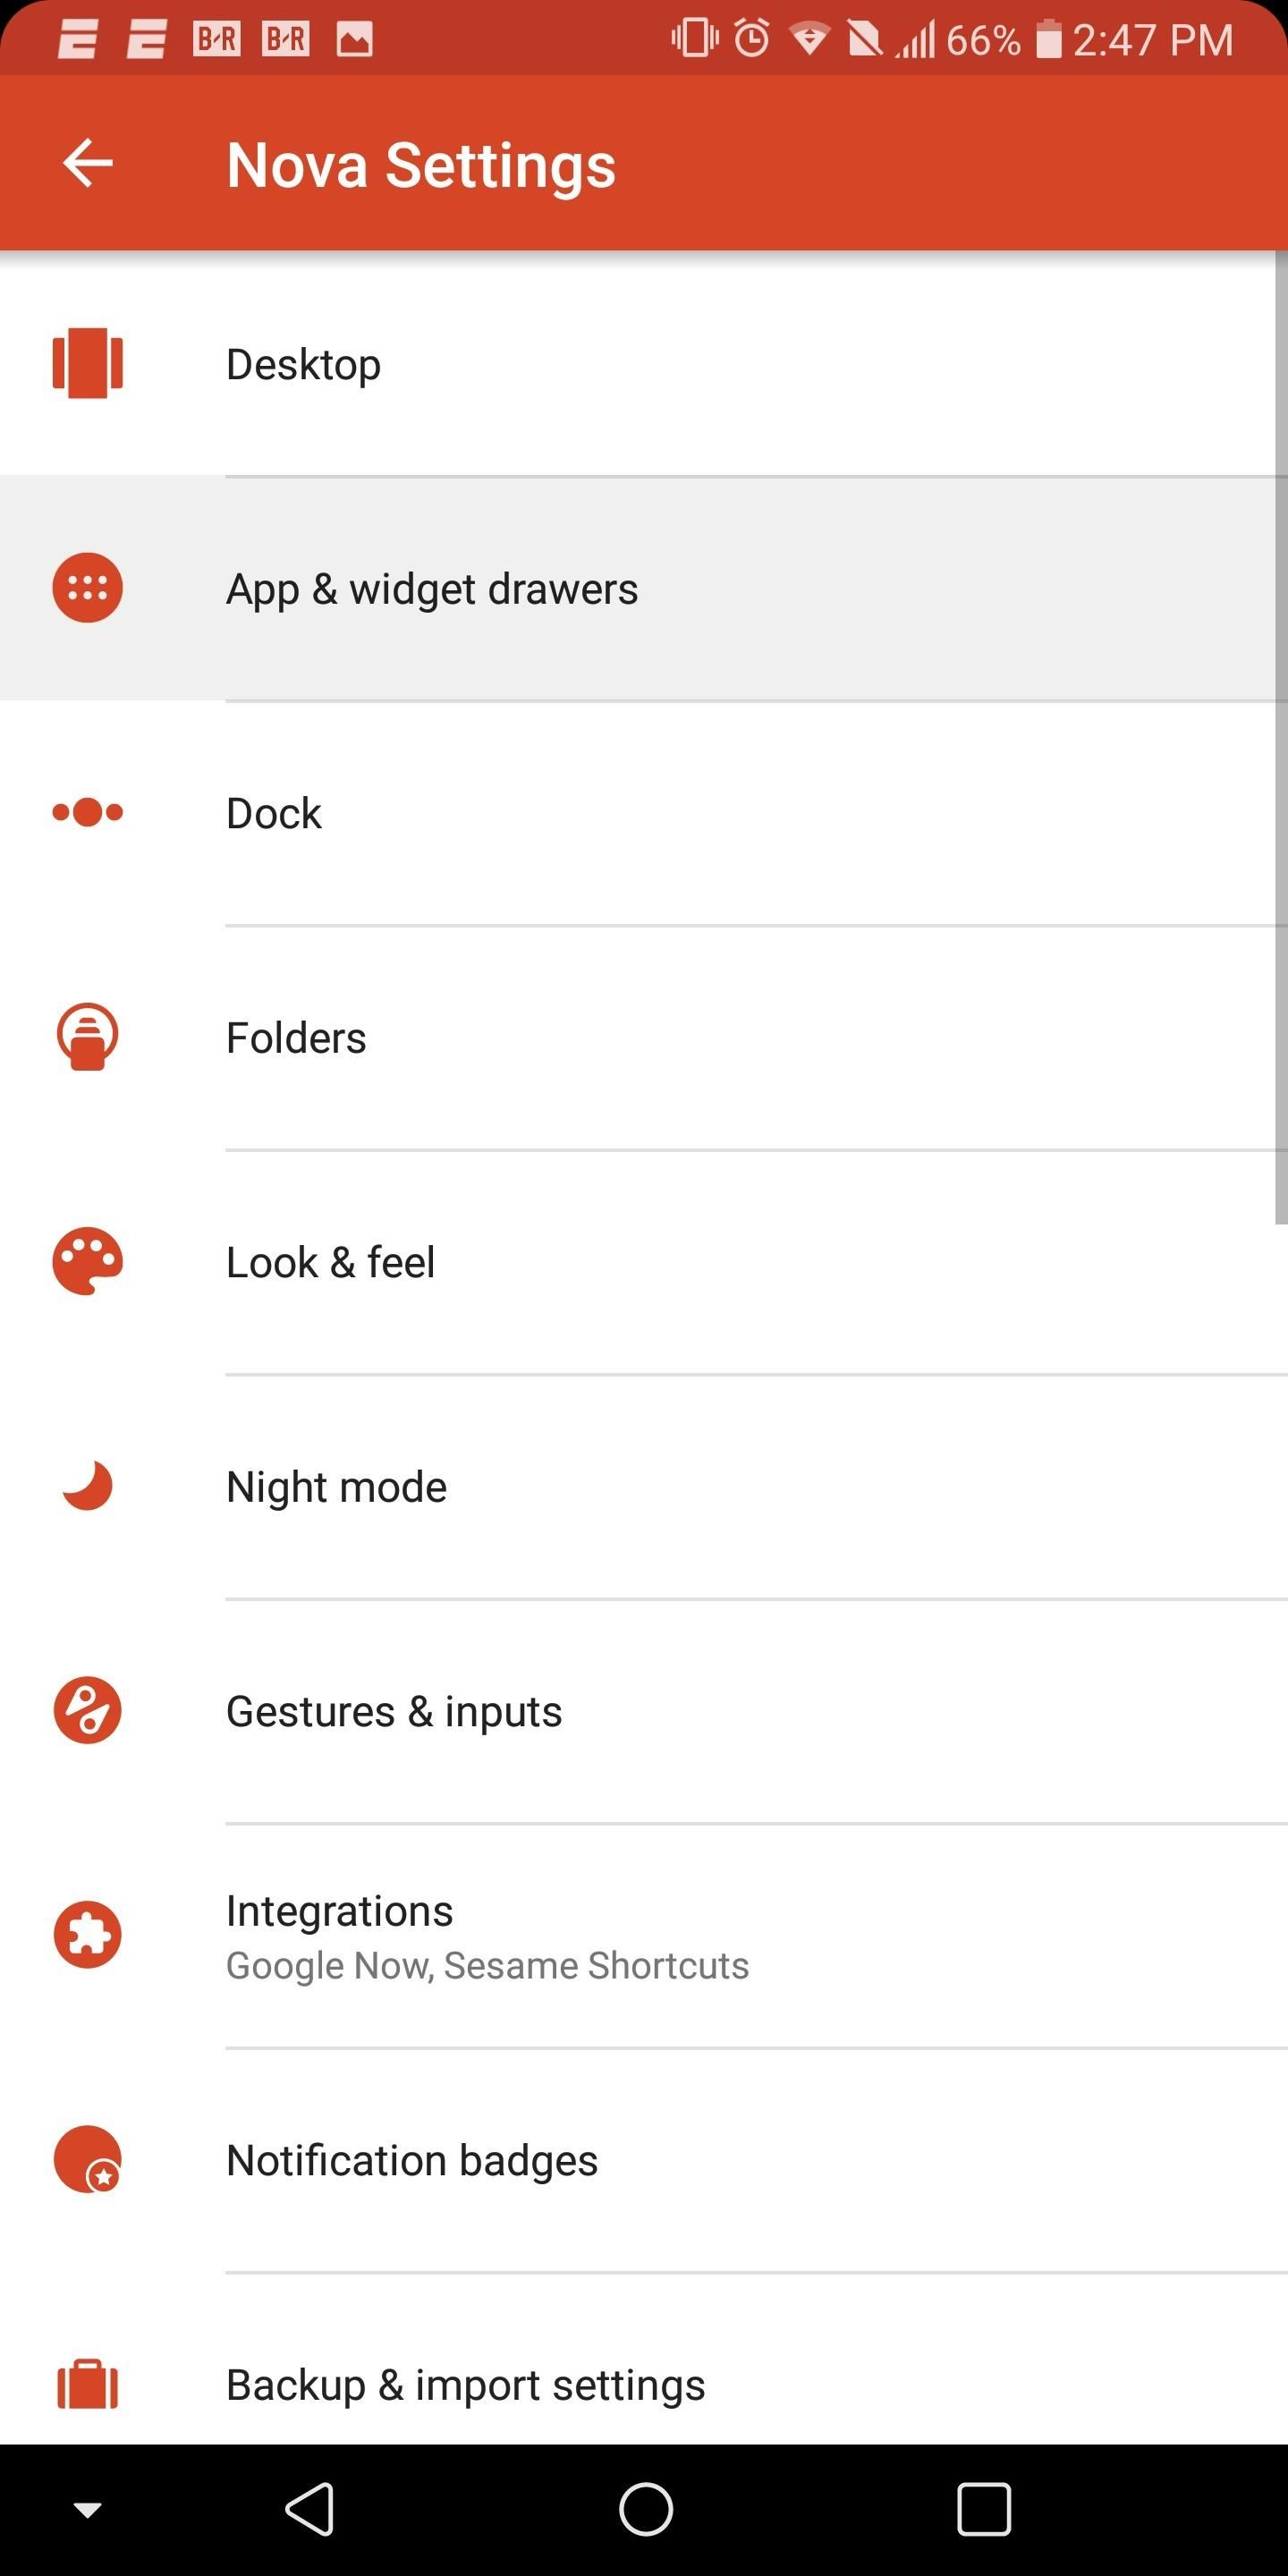 Nova Launcher 101: How to Organize Your App Drawer with Tab Groups